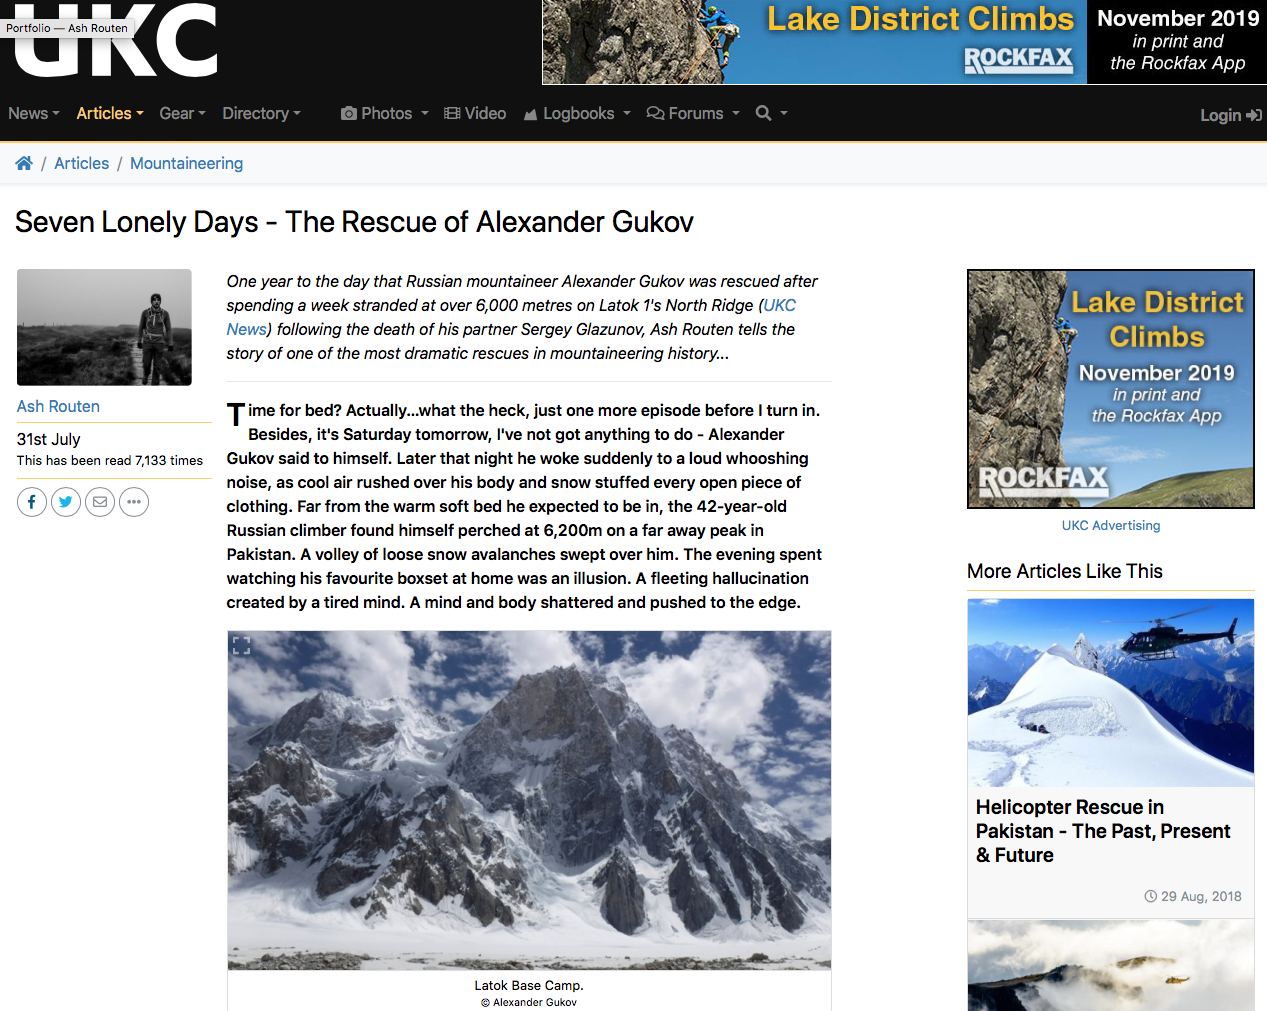 An epic tale of one of the most dramatic mountain rescues in recent times - UK Climbing - July 2019